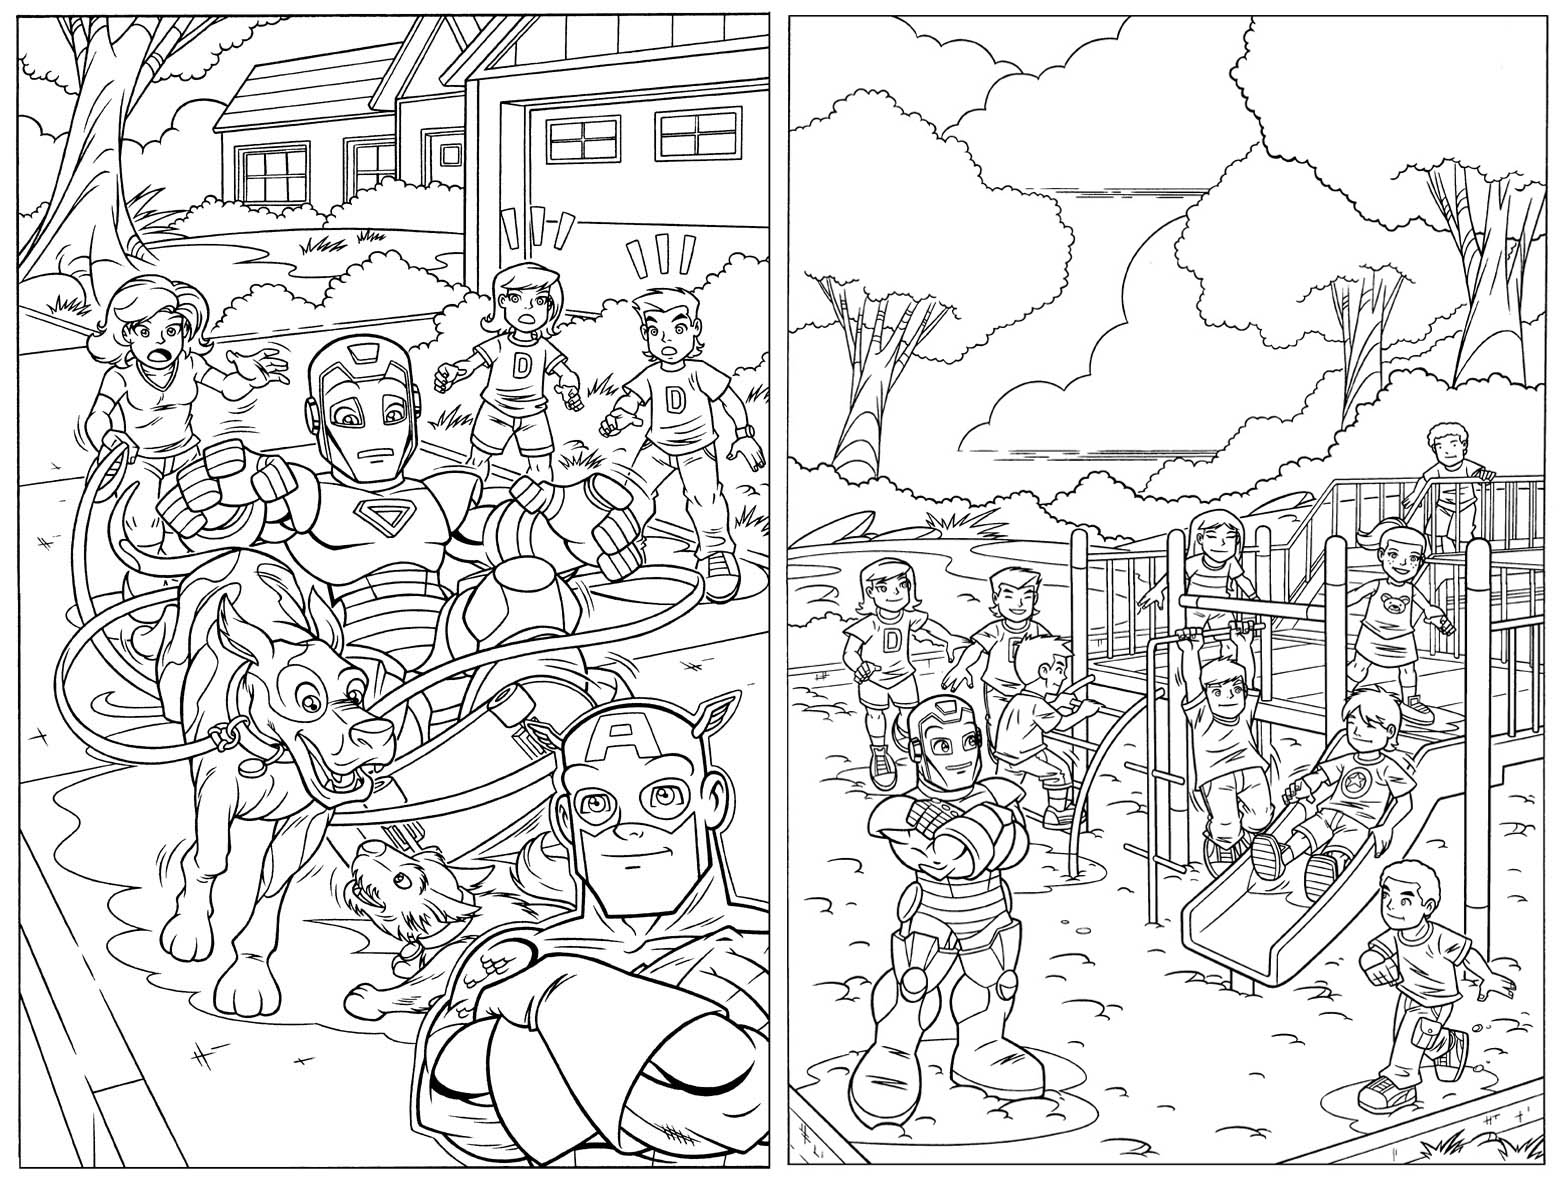 Marvel Super Hero Squad Coloring Pages - Democraciaejustica